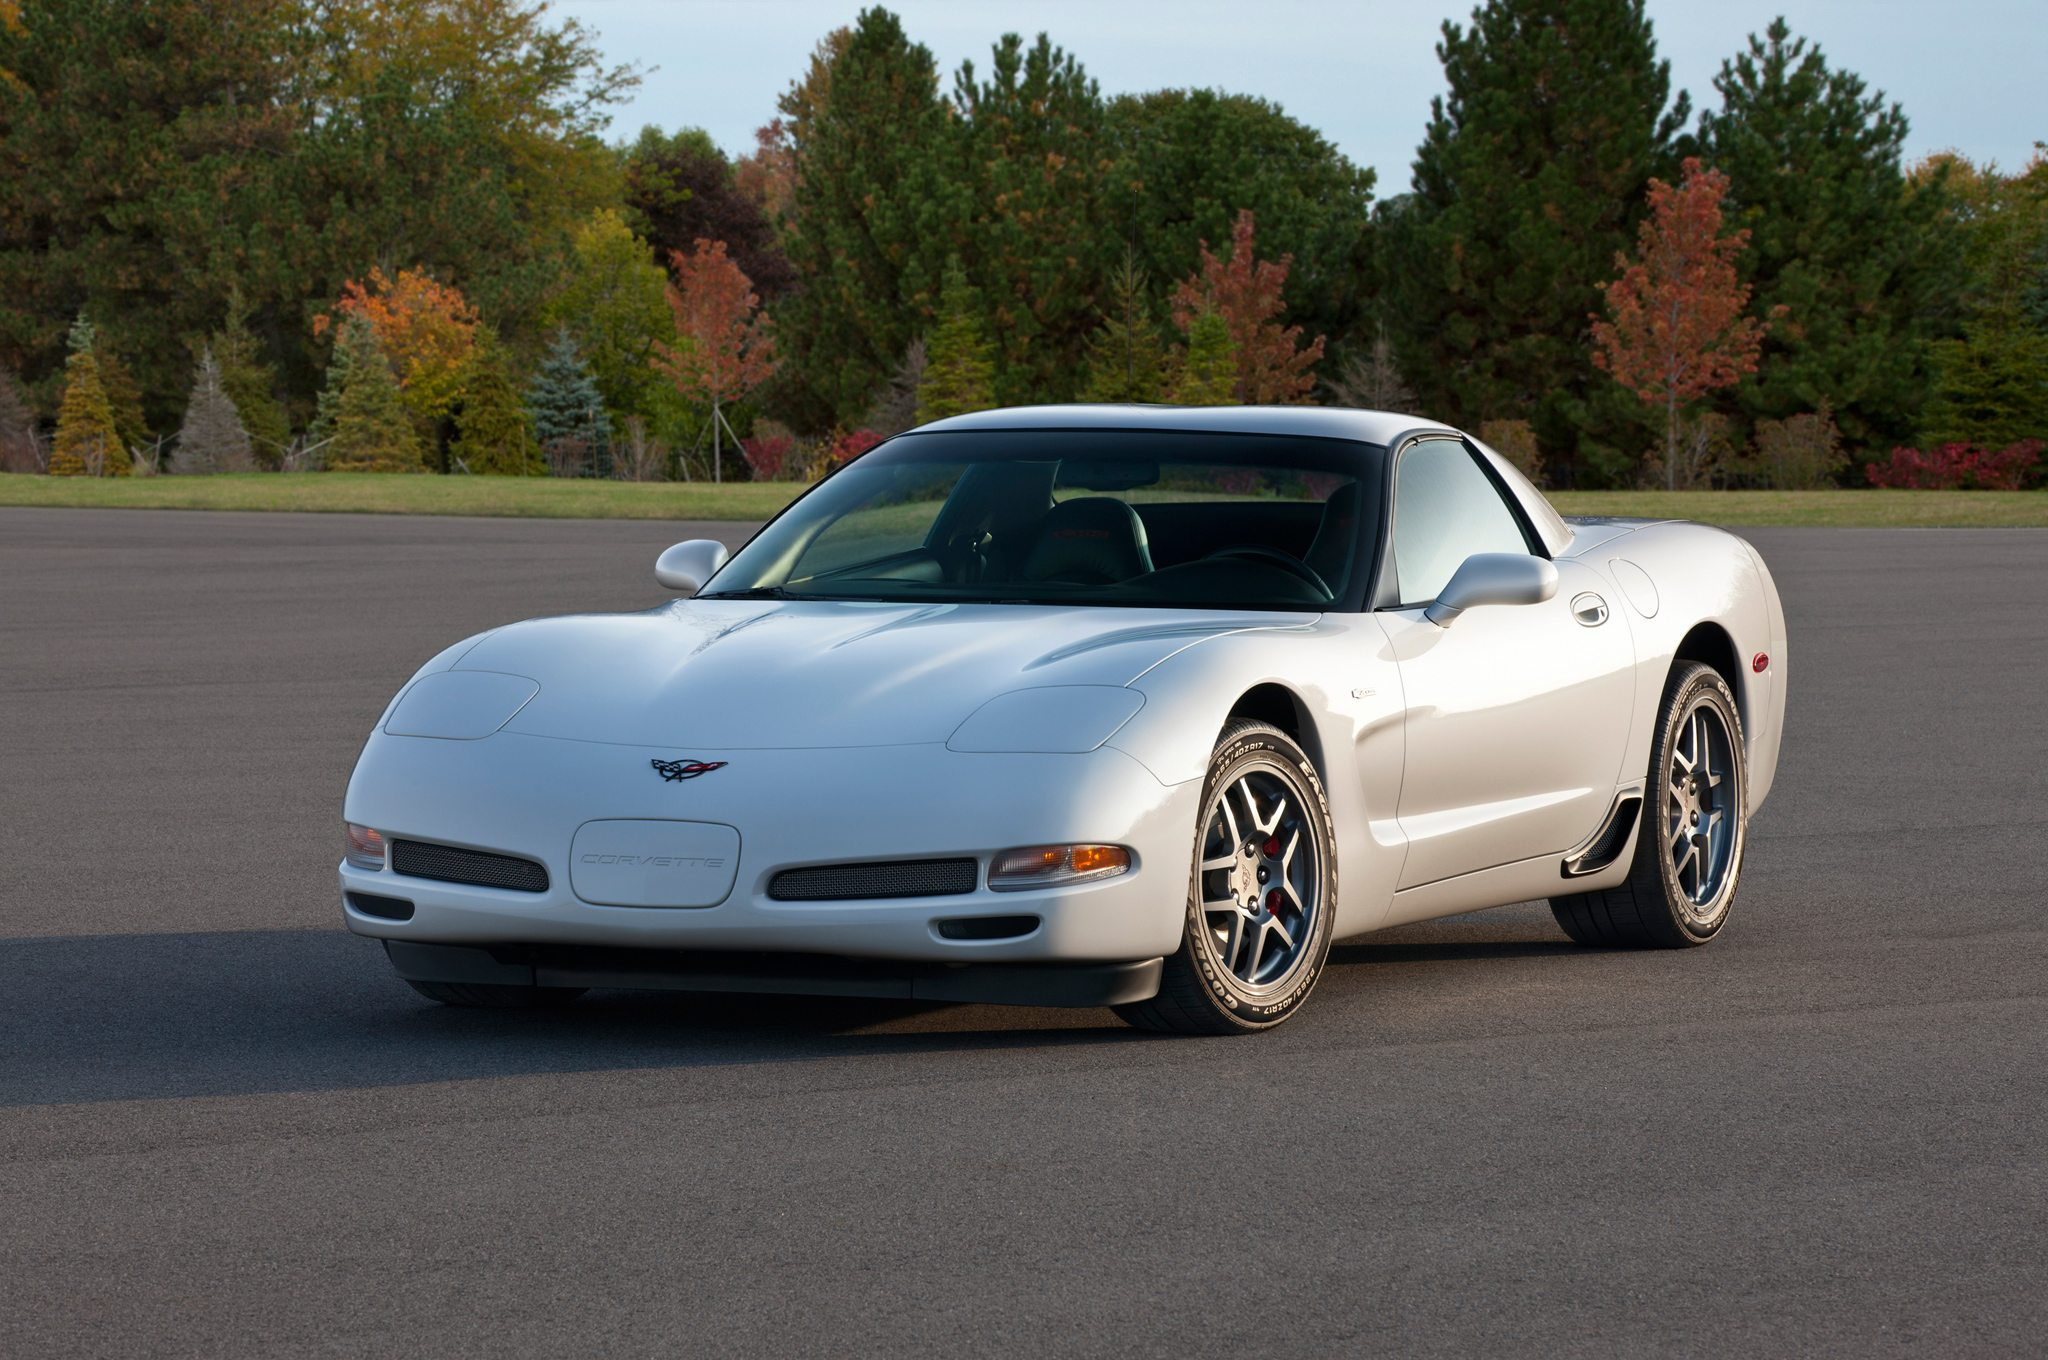 The 2001 c5 chevy corvette coupe image courtesy of gm media